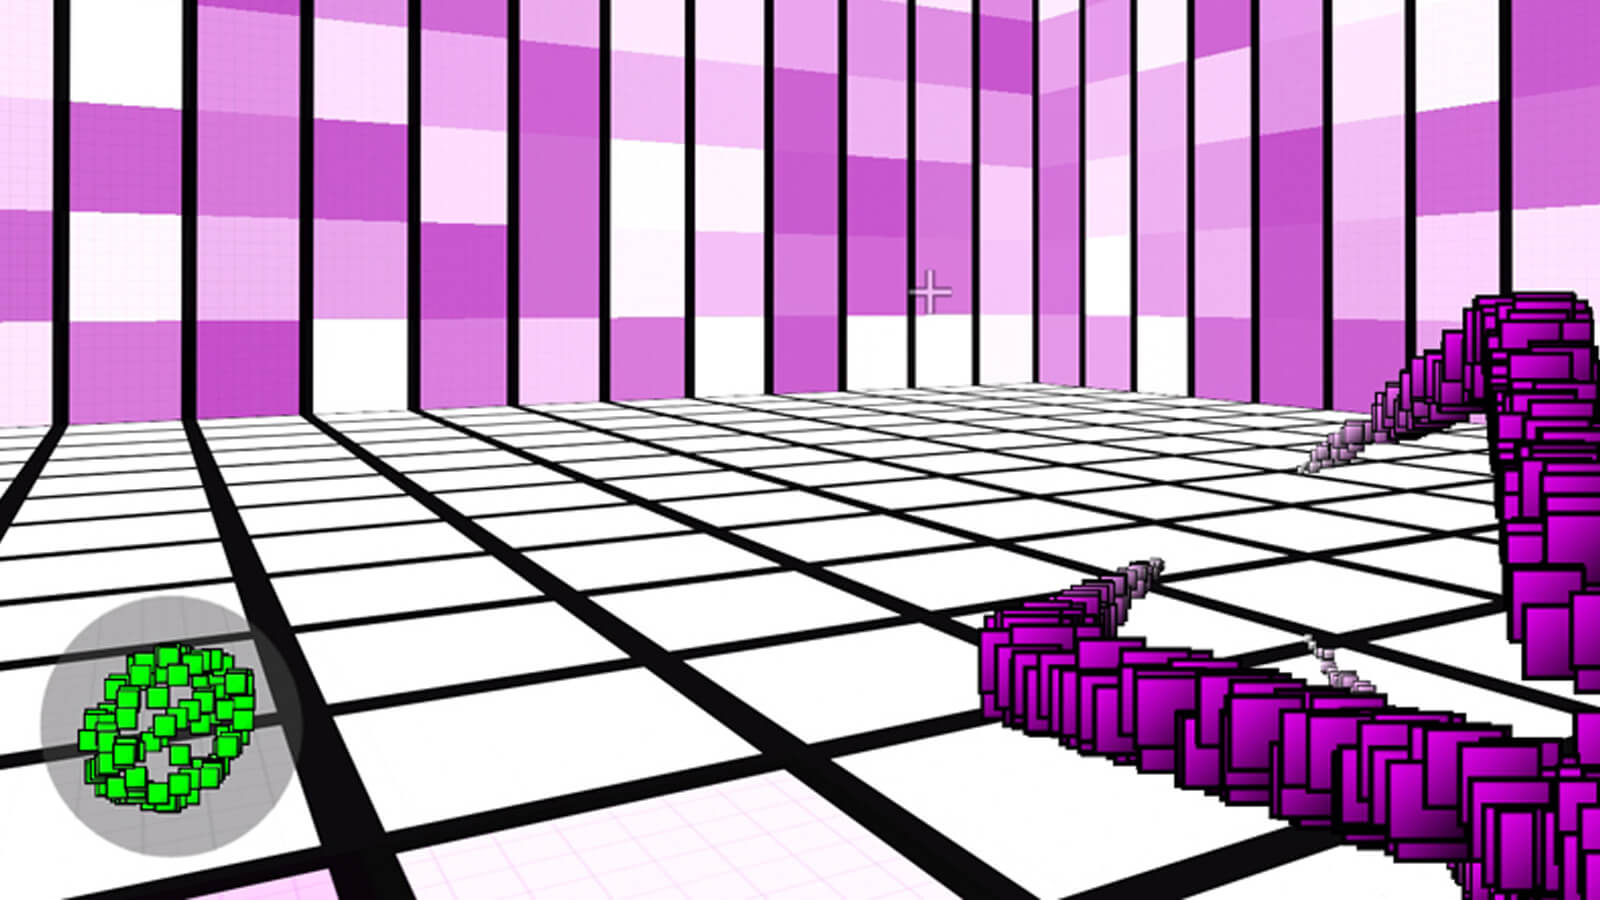 A grid-based room composed of white, pink, and purple squares